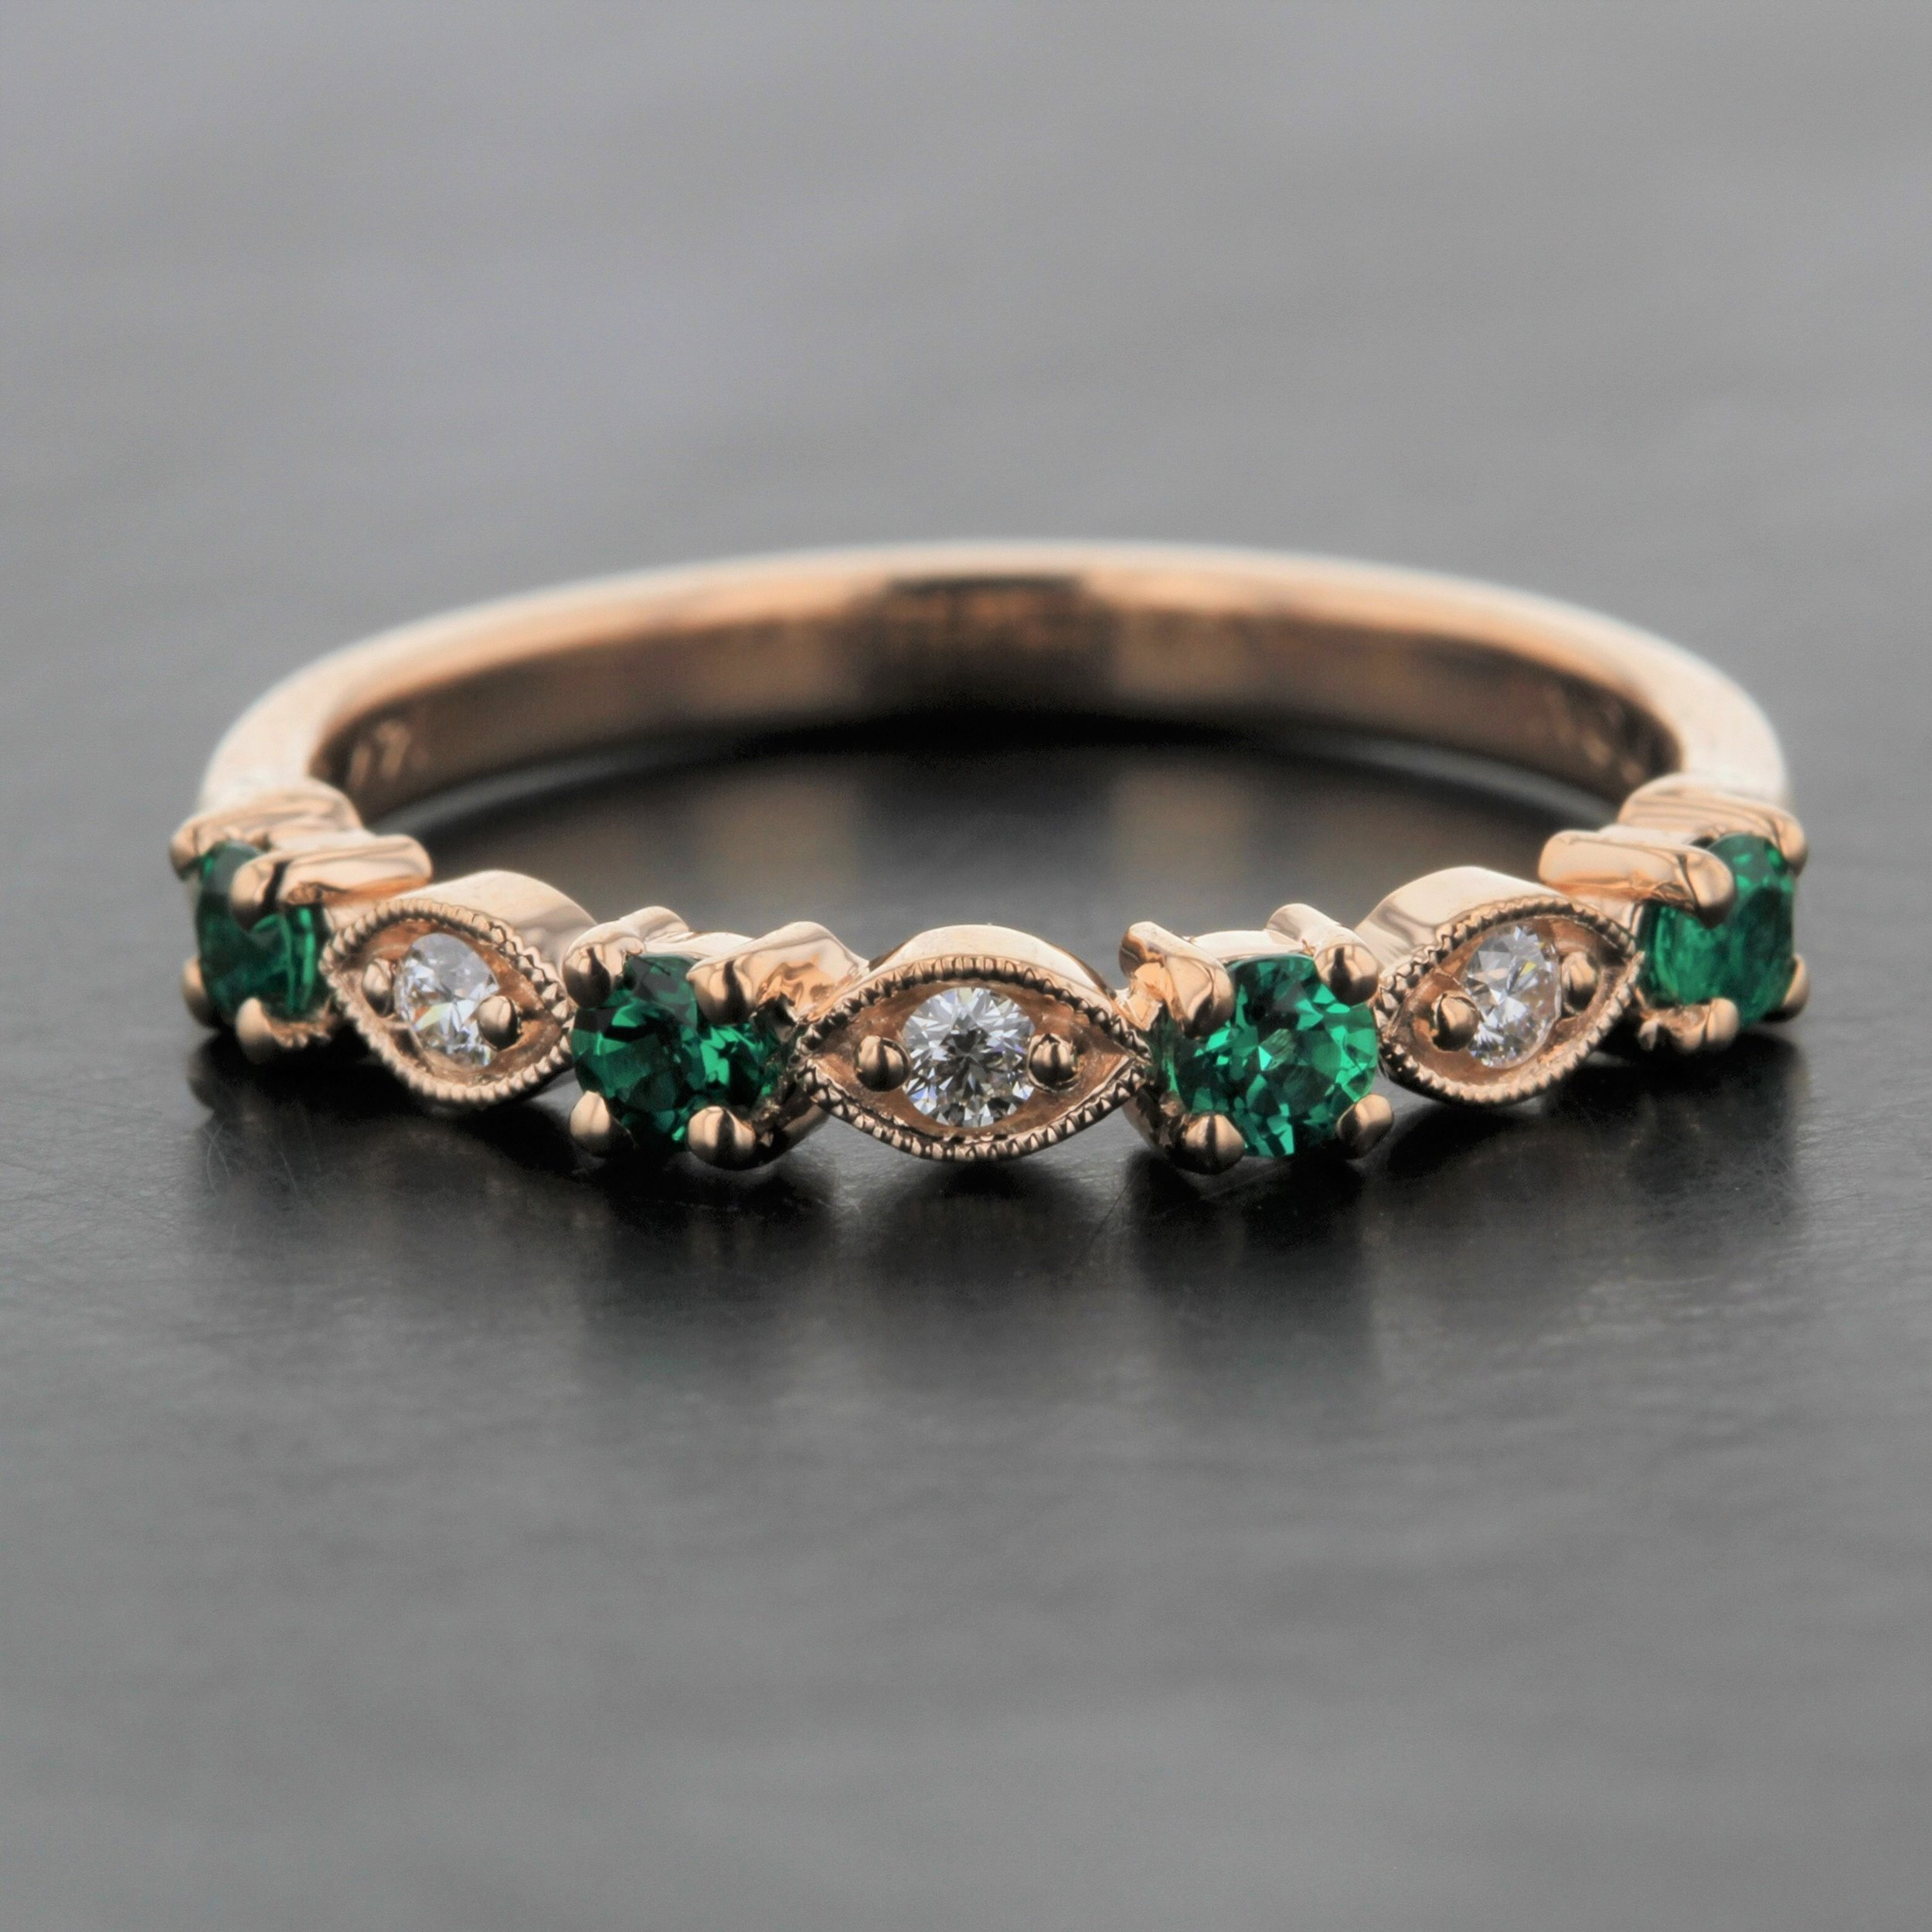 emerald-diamond-rose-gold-birthstone-stacking-mothers-band-ring.jpg